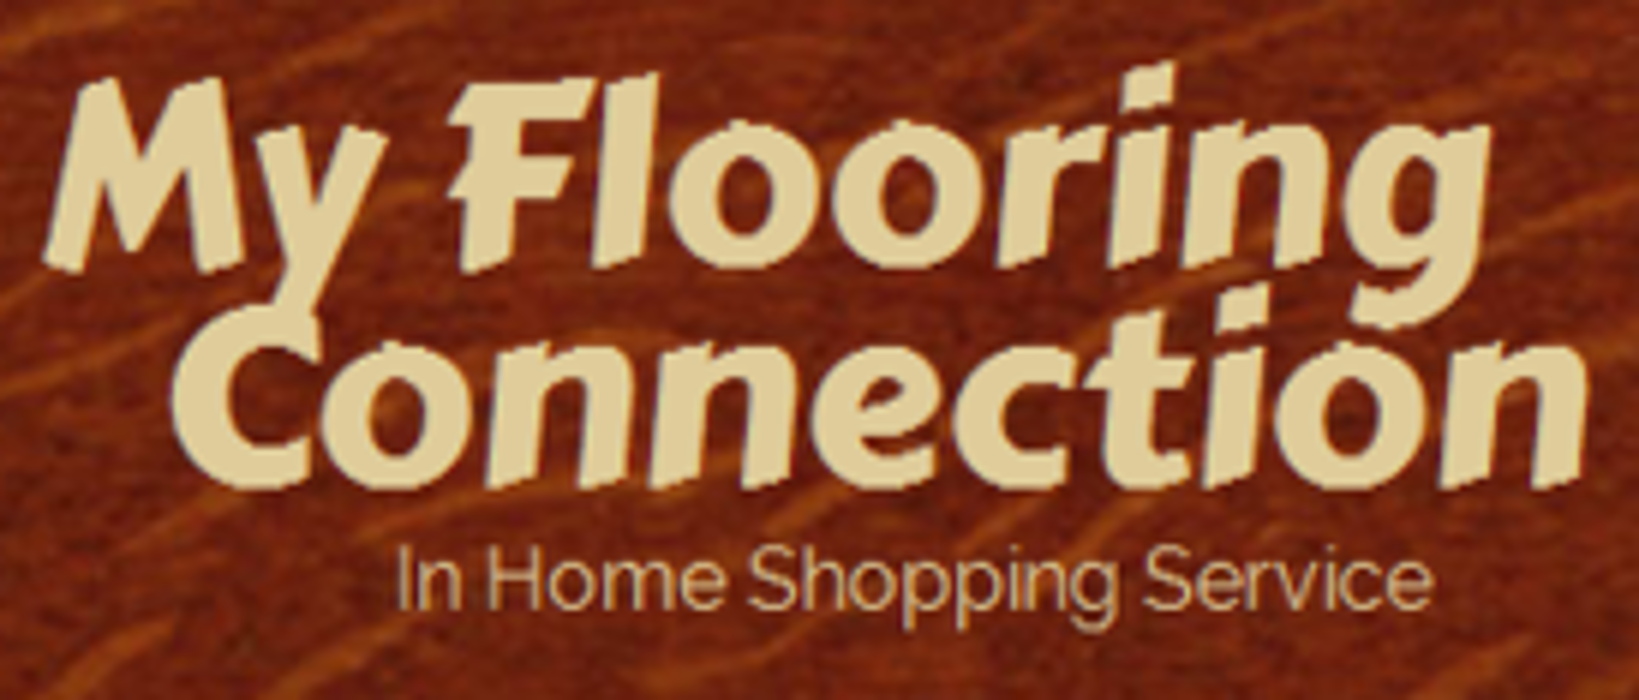 My Flooring Connection - Grapevine, TX